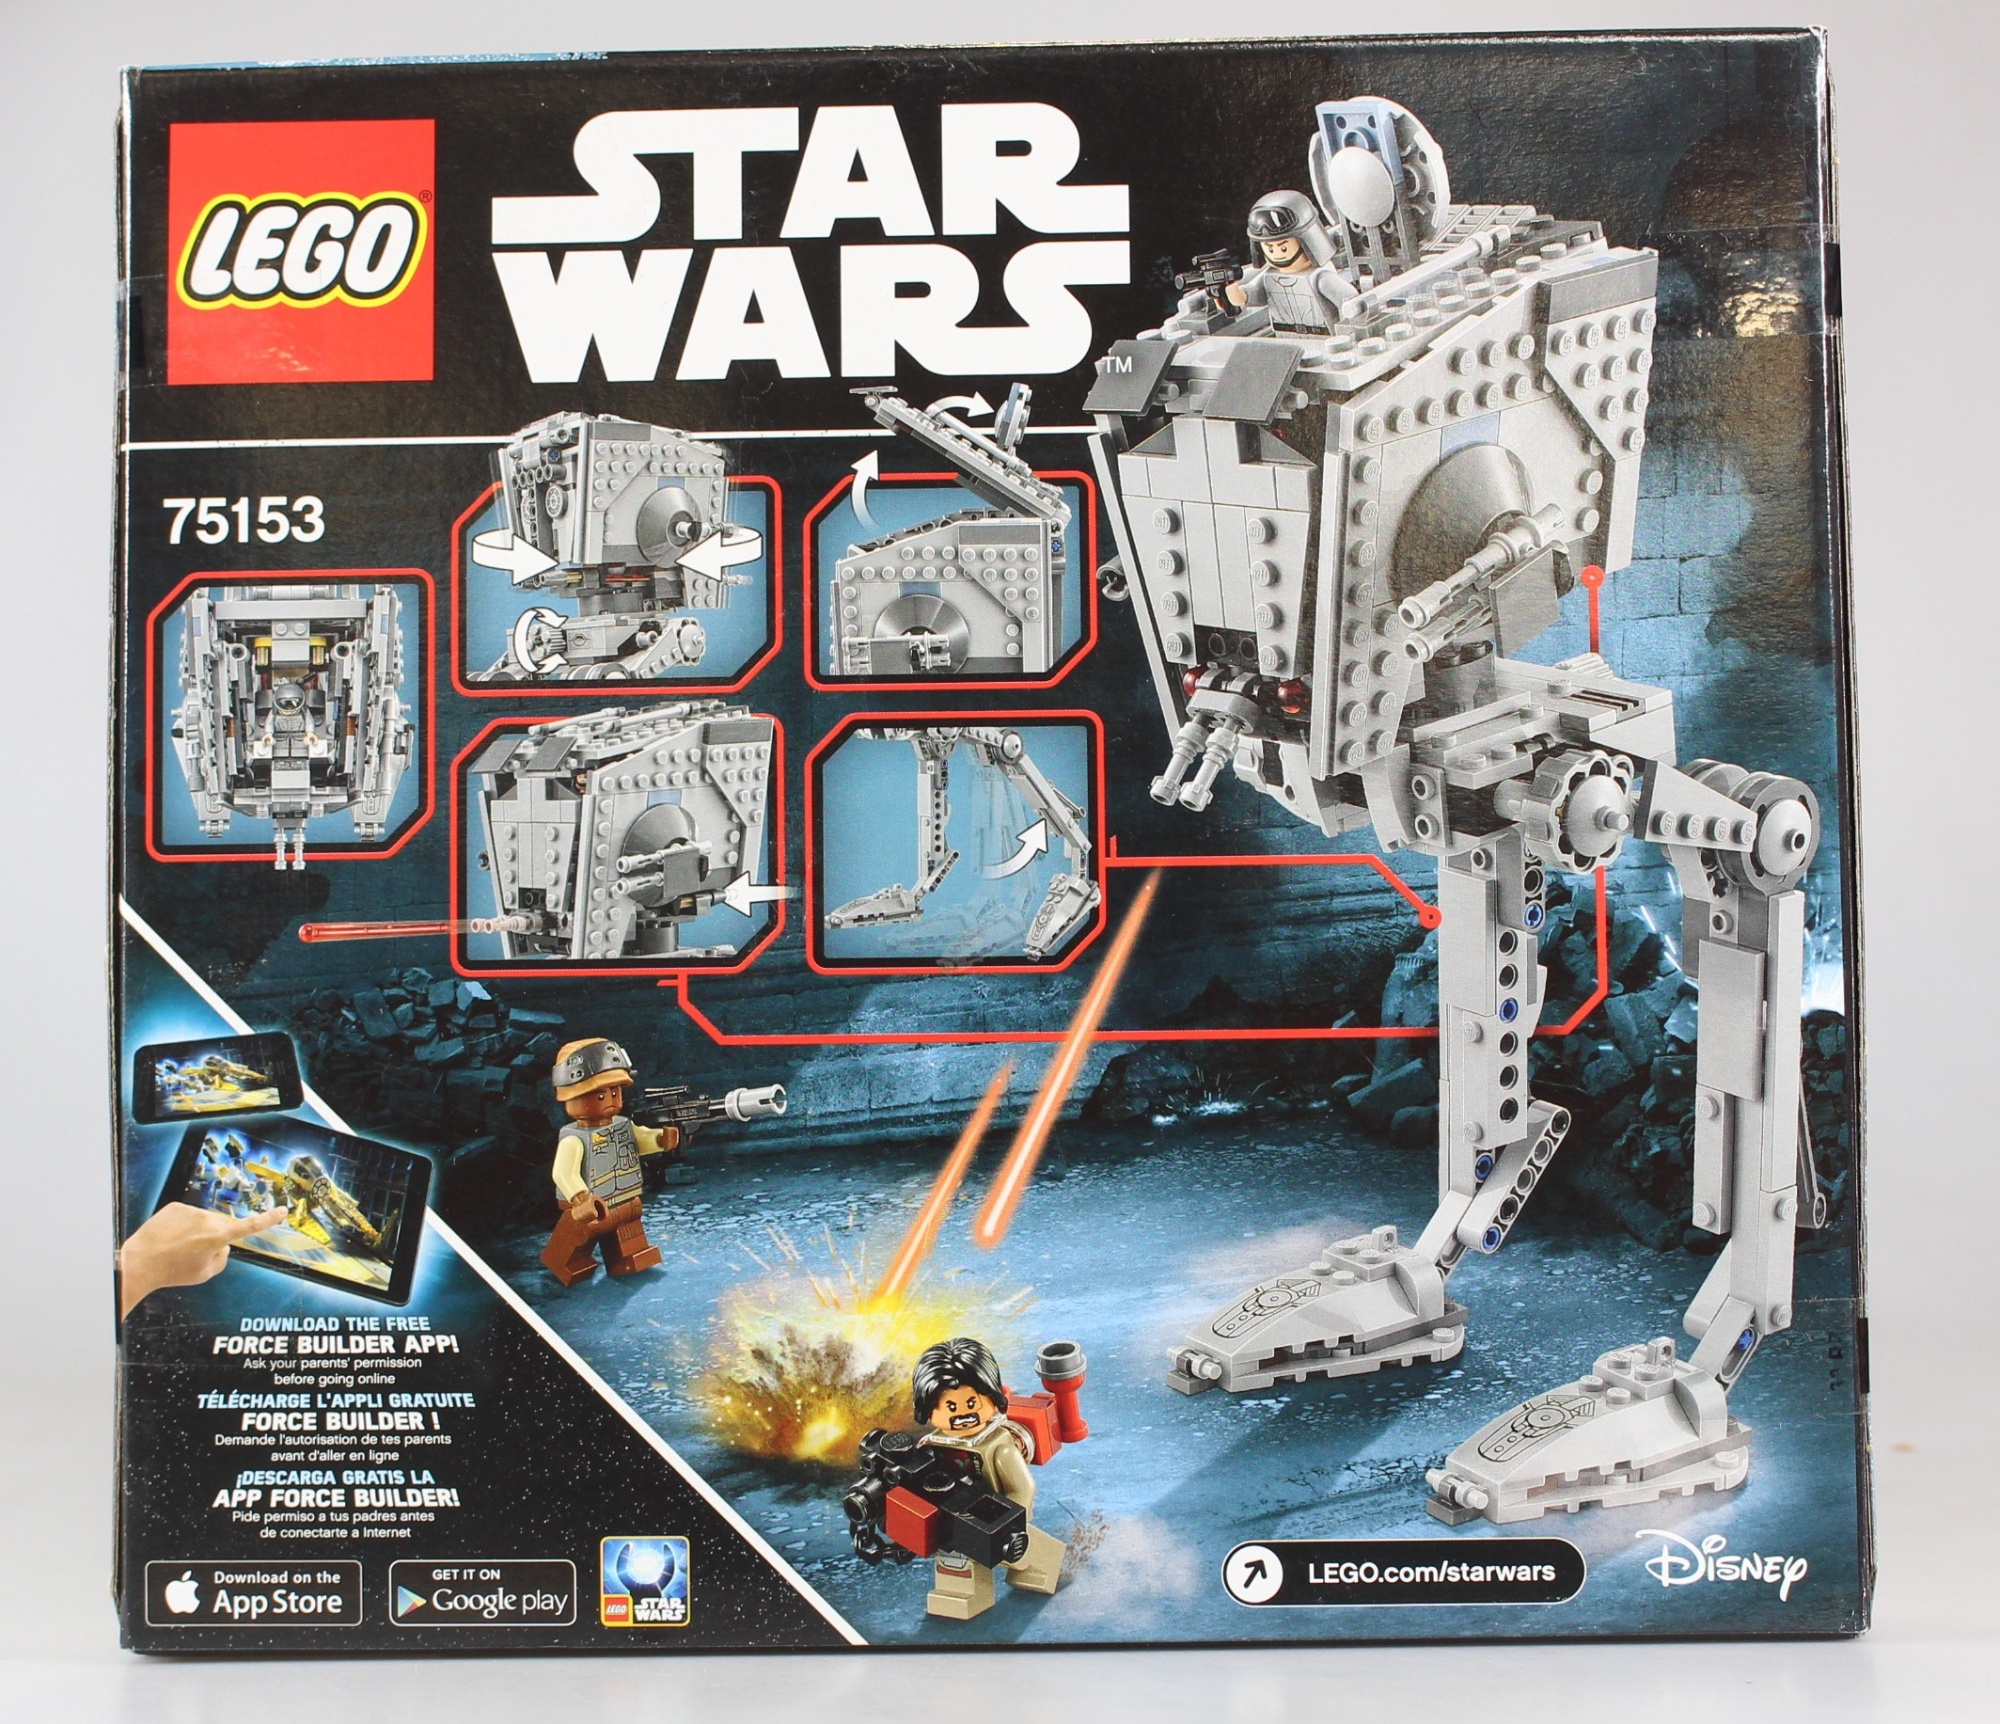 Lego Star Wars 75153 At St Walker Lego Shop Online For Toys In The United States